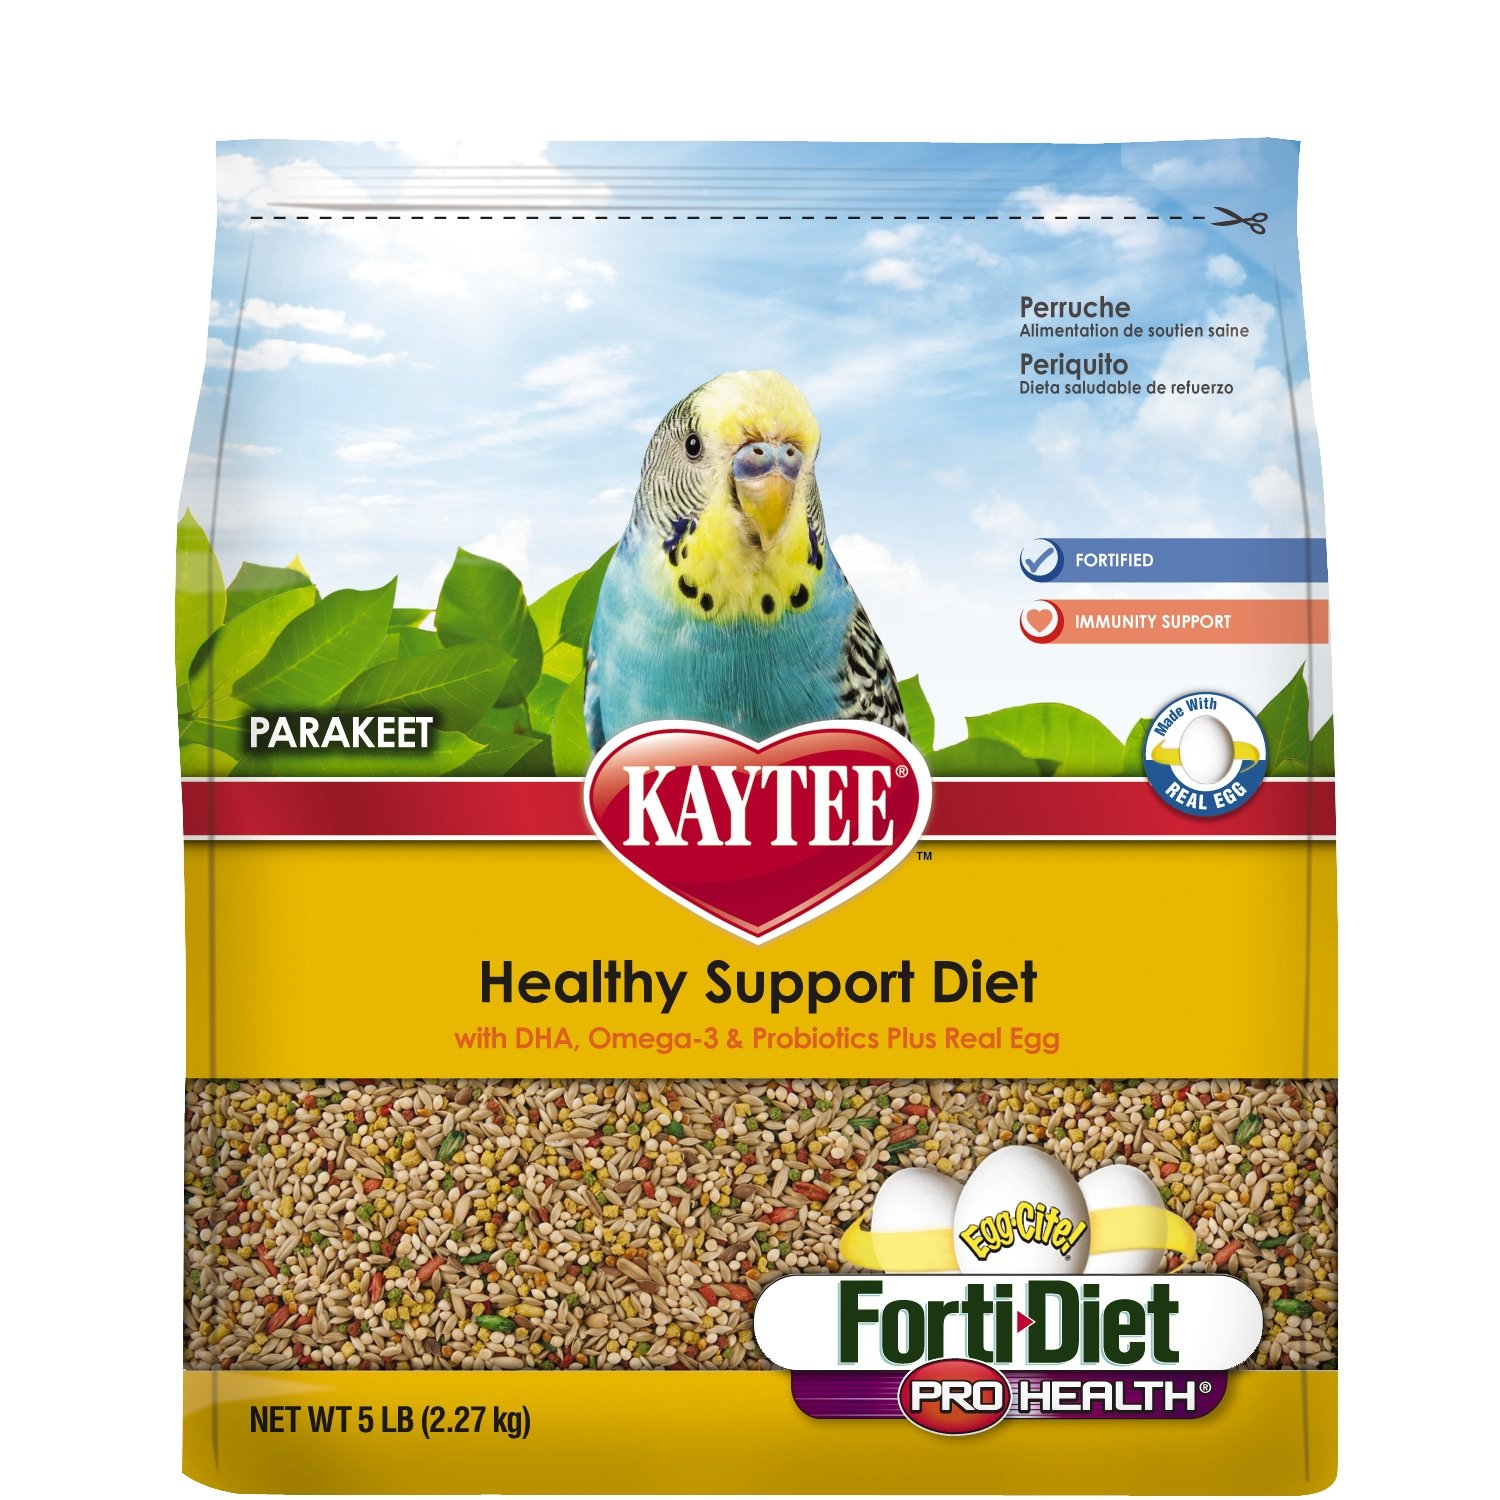 Kaytee Forti Diet Egg-Cite Bird Food for Parakeets, 5-Pound Bag